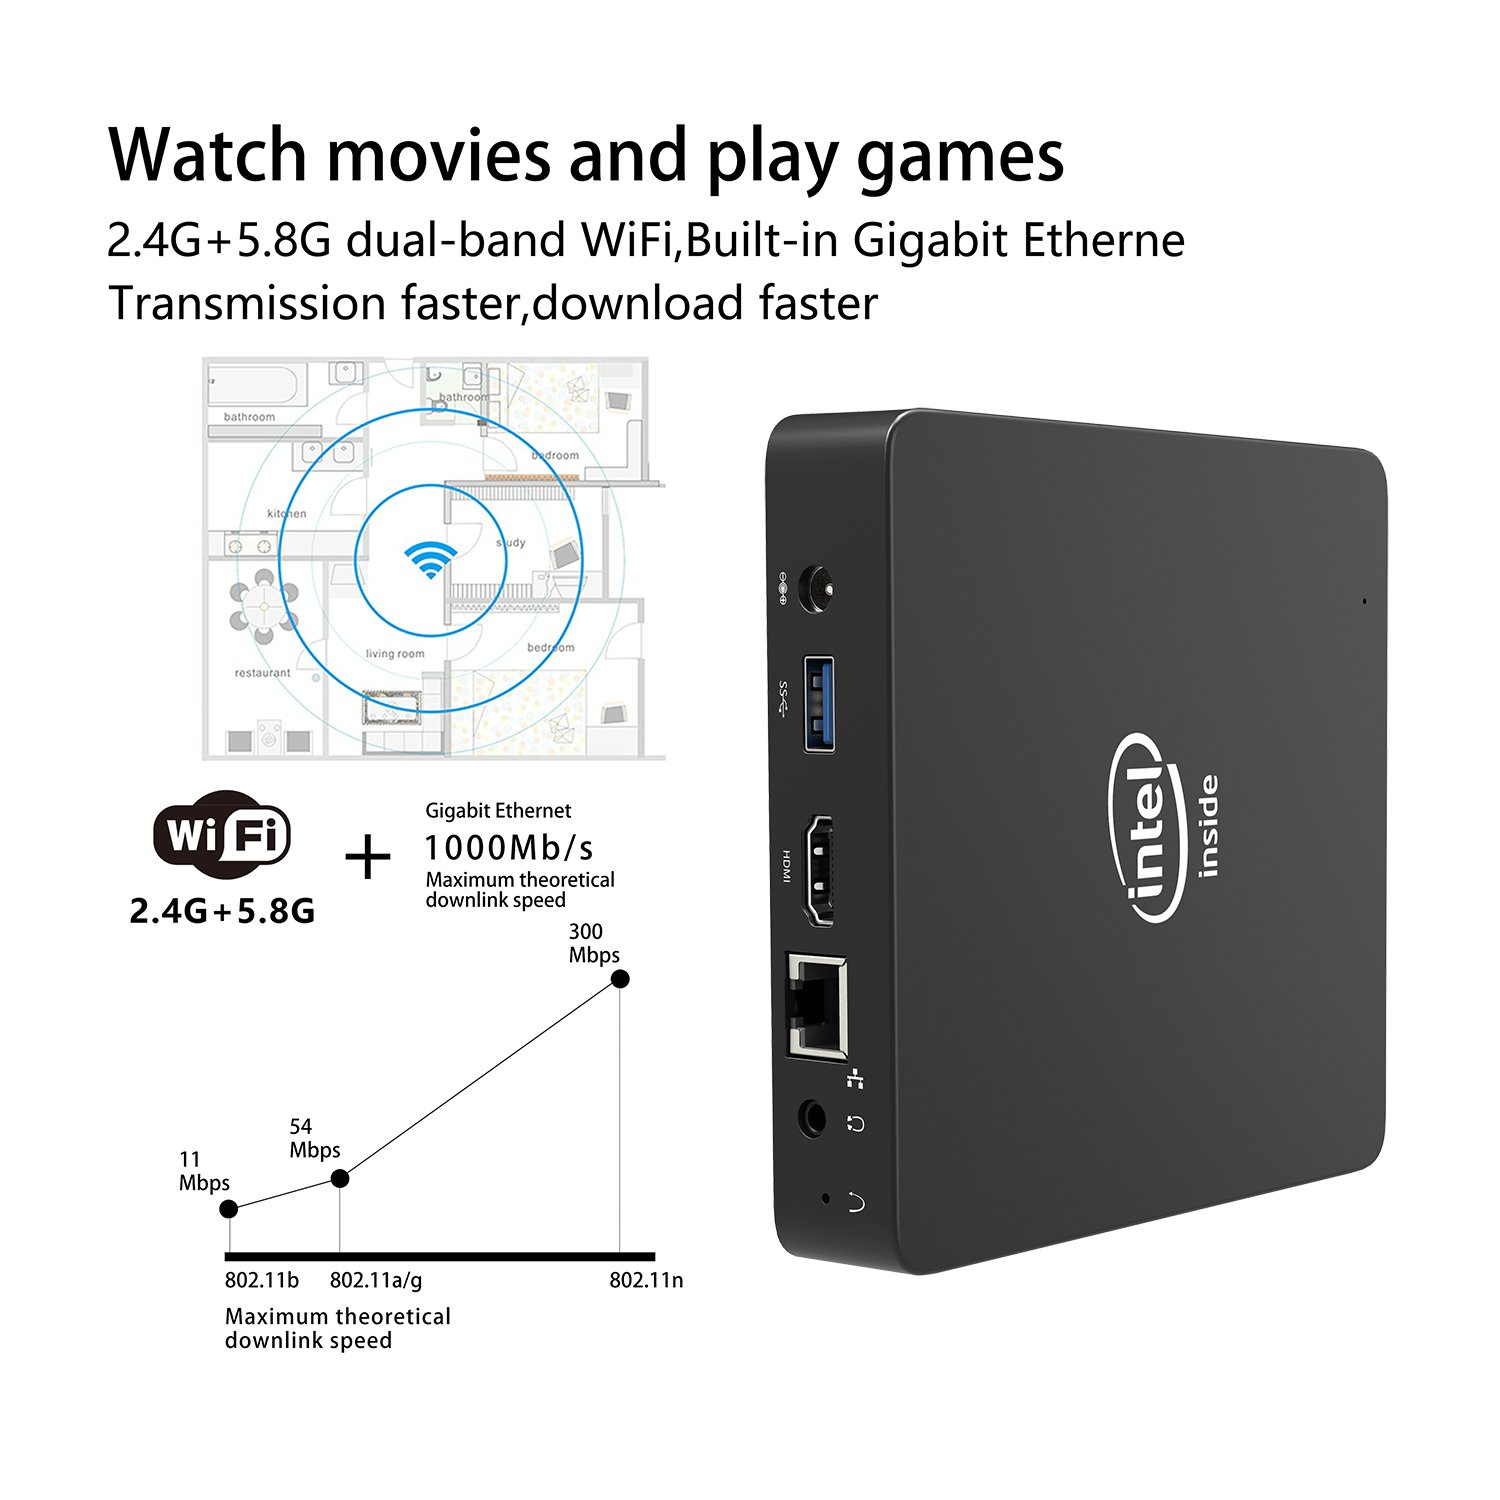 Z83 W Fanless Mini Pc Intel Cherry Trail X5 Z8350 Up Puter System Diagram In Addition On Hardware Block Of Toilet To 192 Ghz Hd Graphics 2gb 32gb 4k 1000m Lan 24 58ghz Wifi Bt 40 Hdmivga